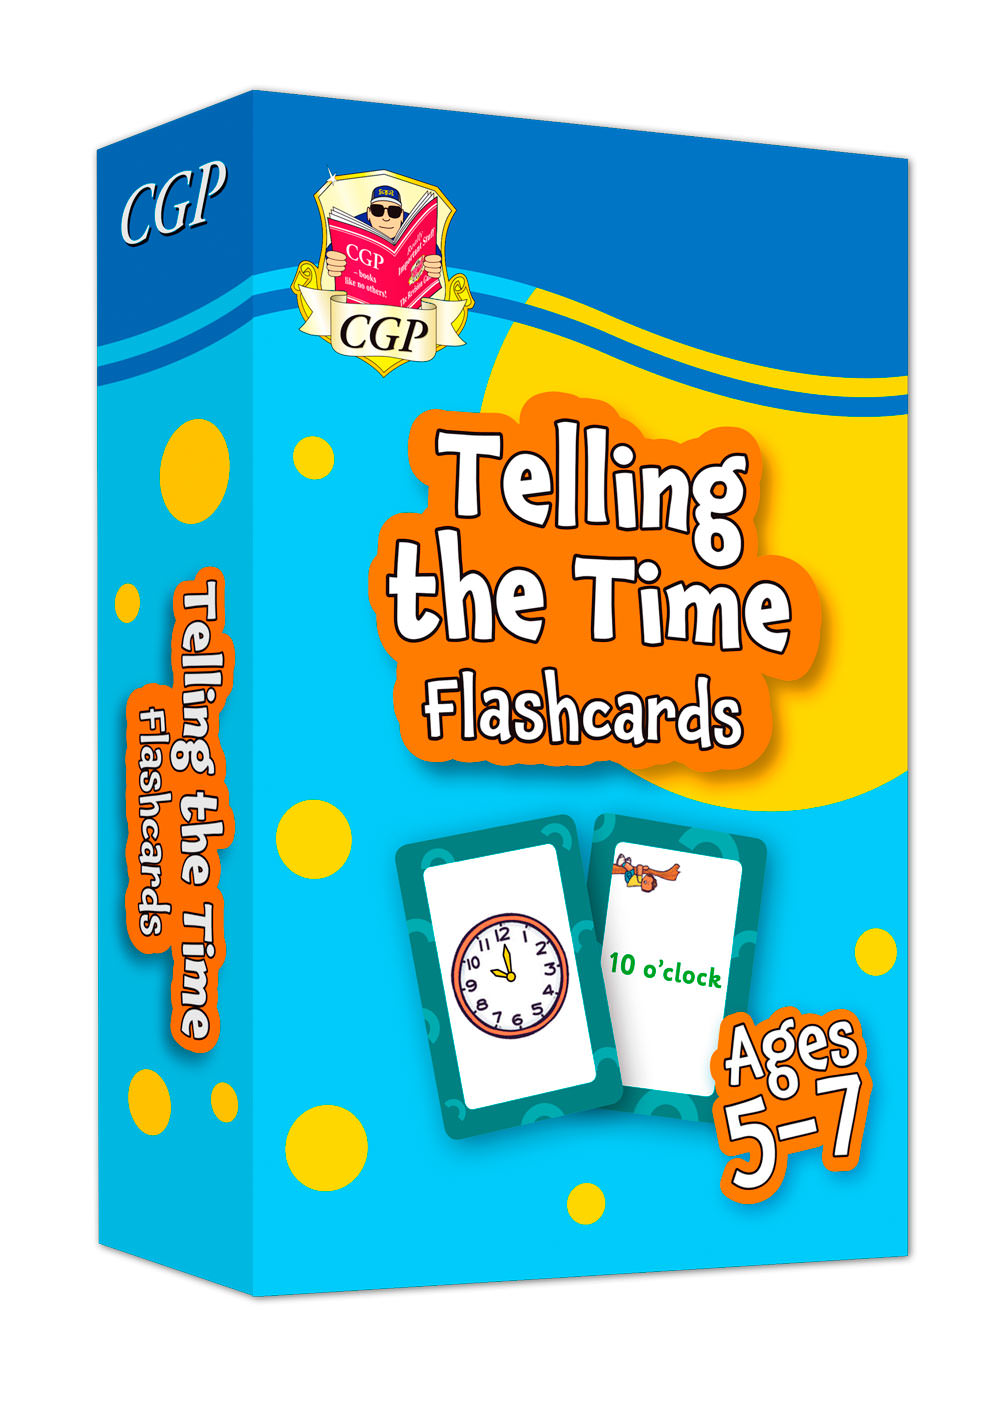 MPFTIF11 - New Telling the Time Home Learning Flashcards for Ages 5-7